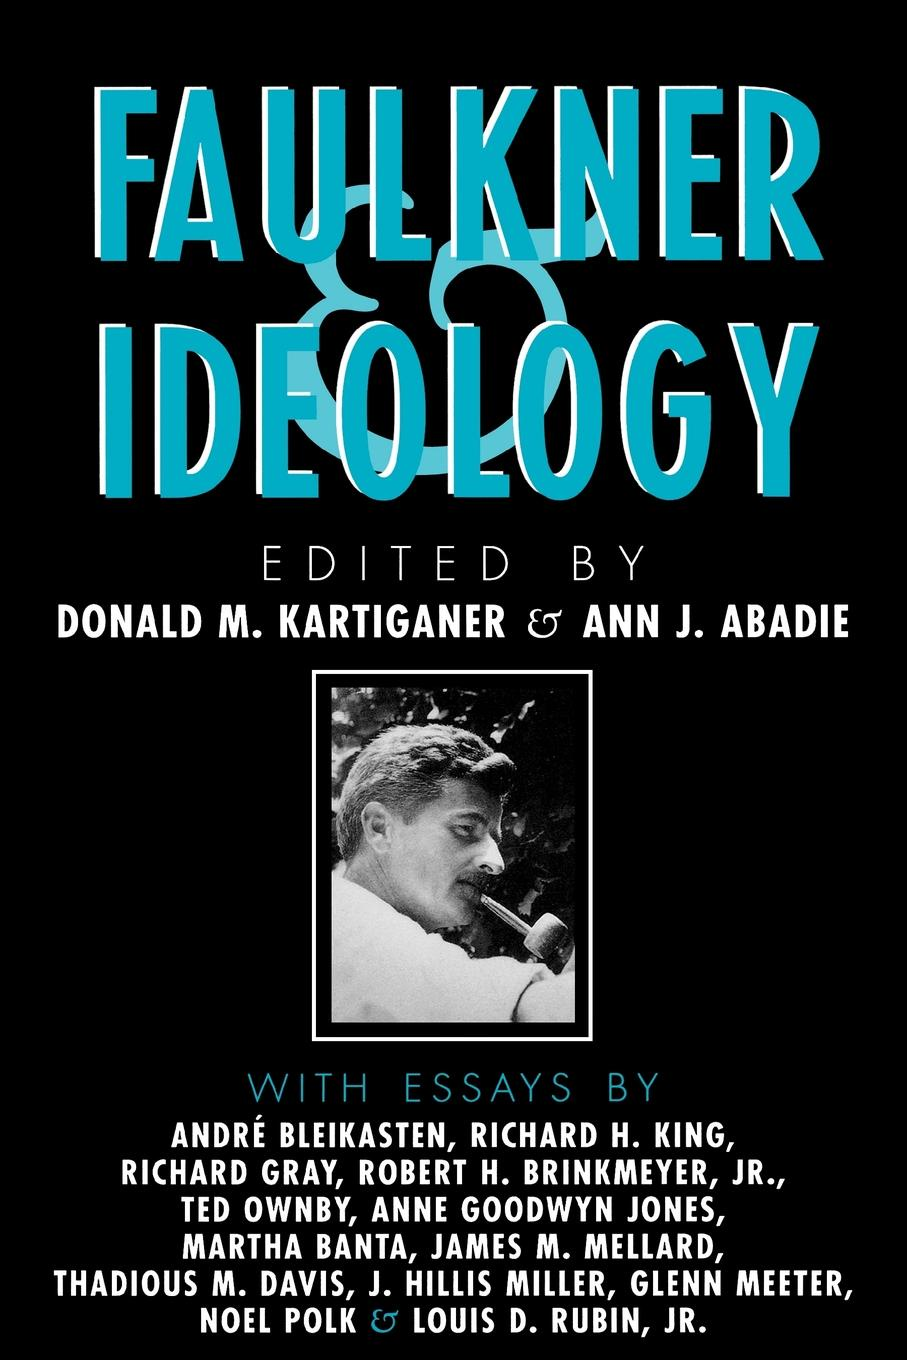 Faulkner and Ideology